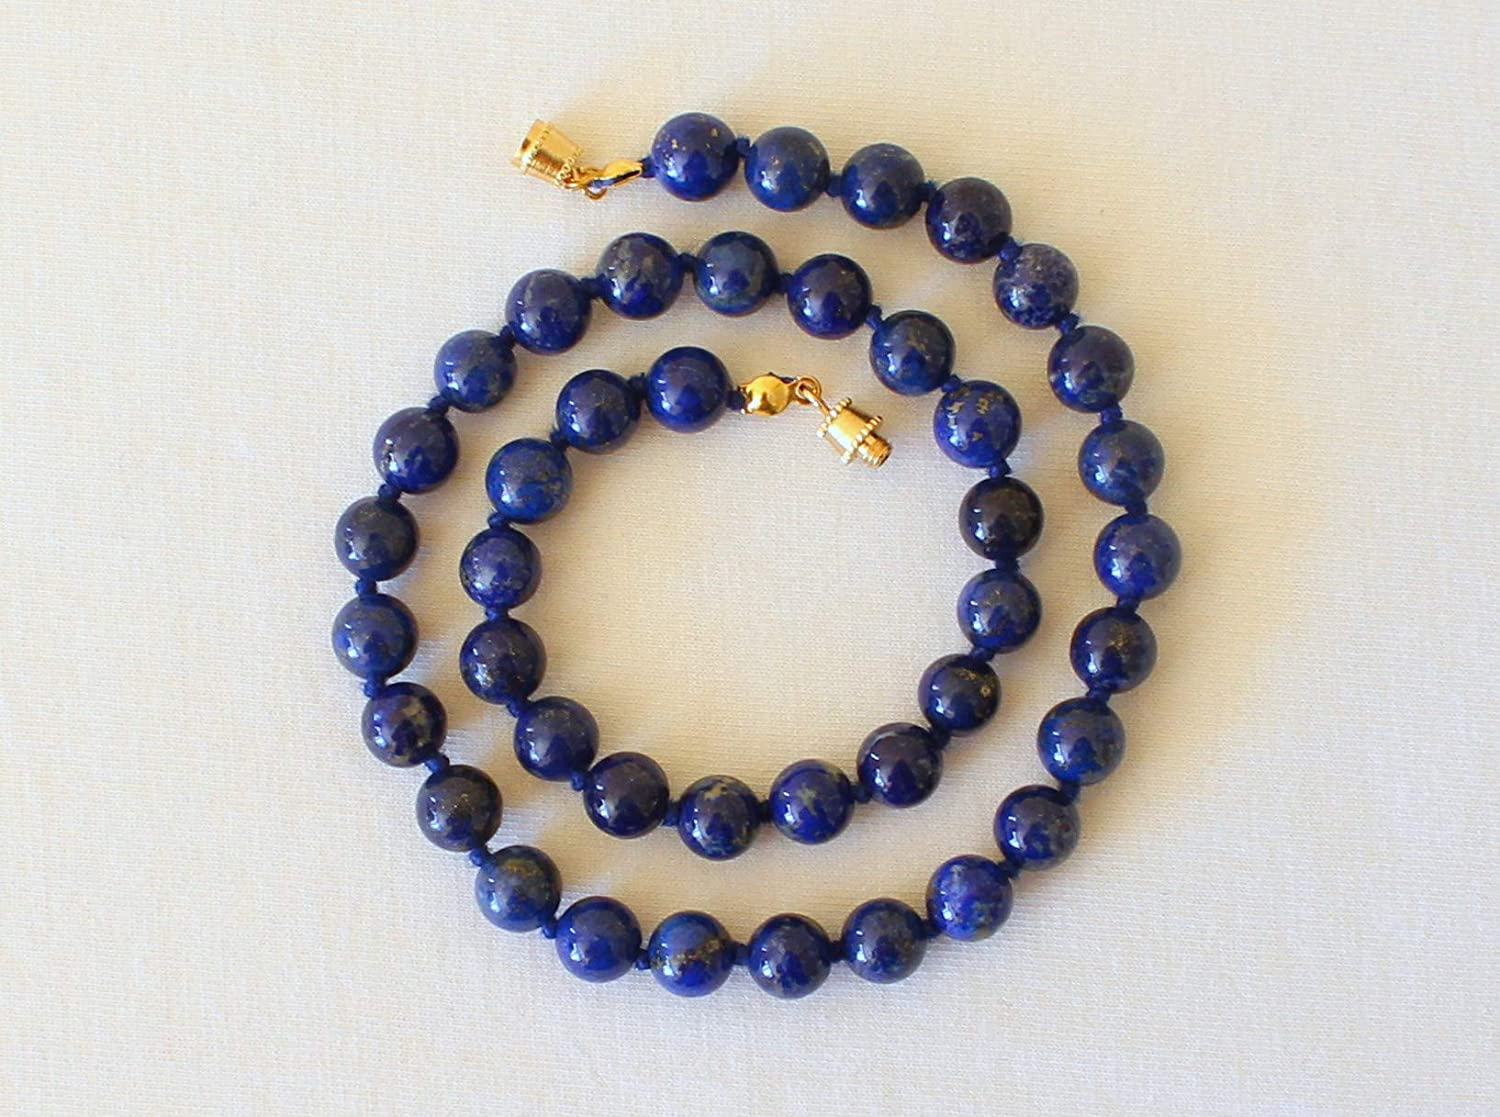 Natural Lapis Lazuli Necklace 8mm 16 inches